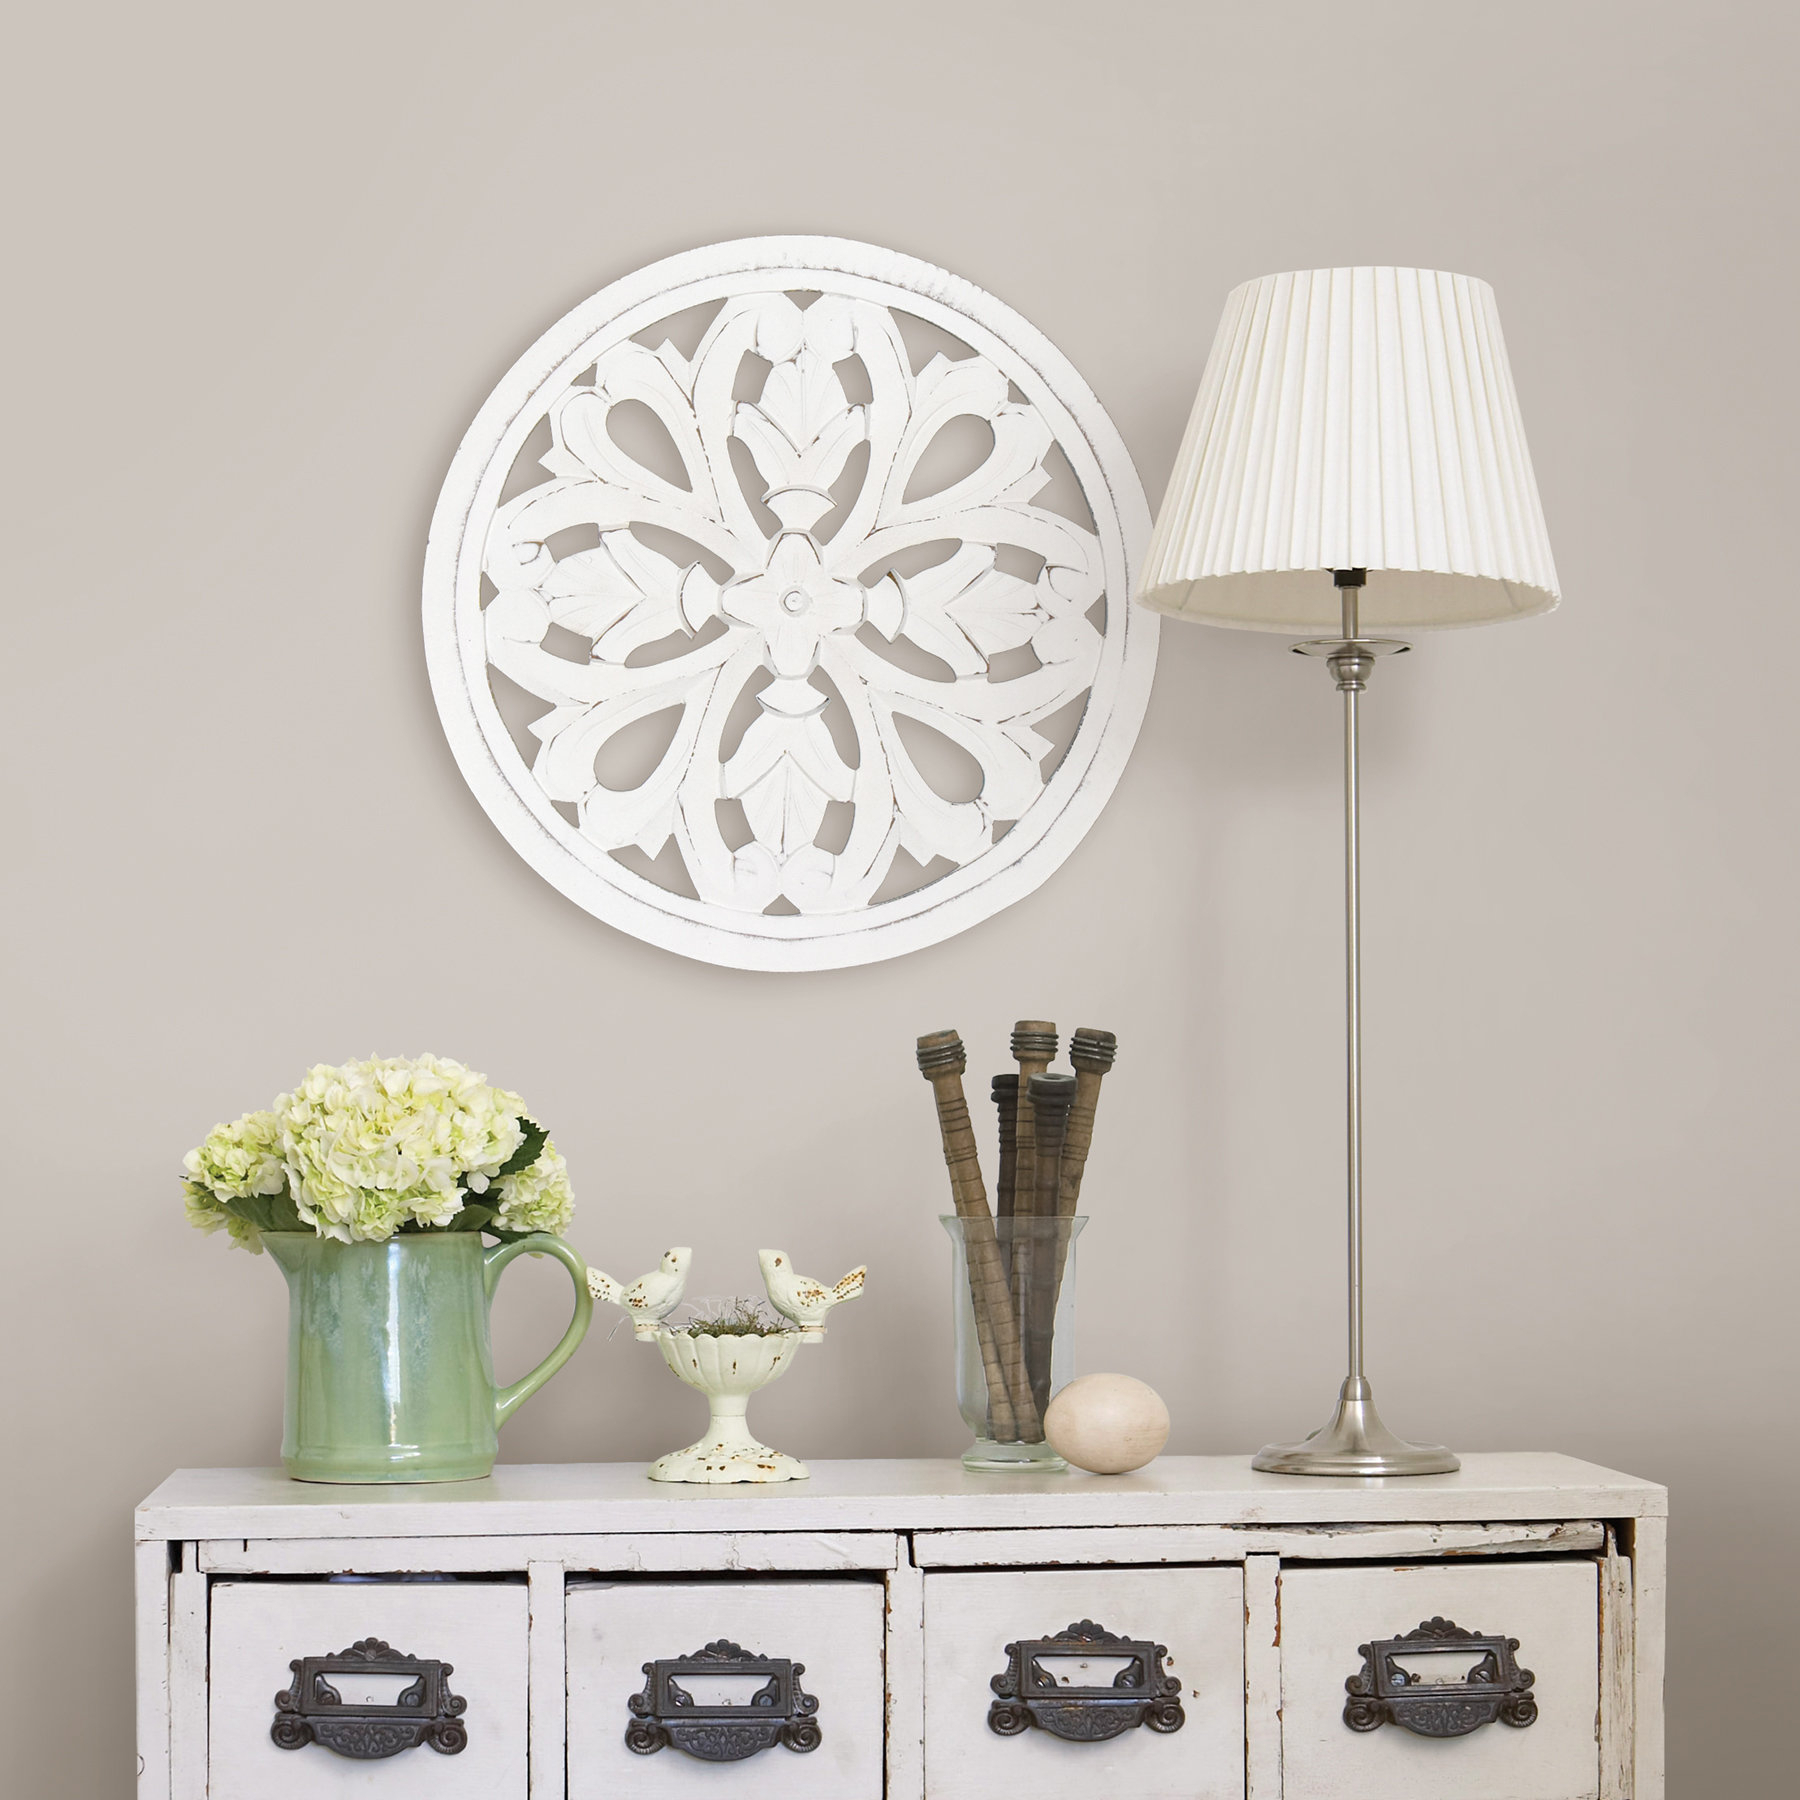 Round Medallion Wall Decor | Wayfair within Small Medallion Wall Decor (Image 16 of 30)